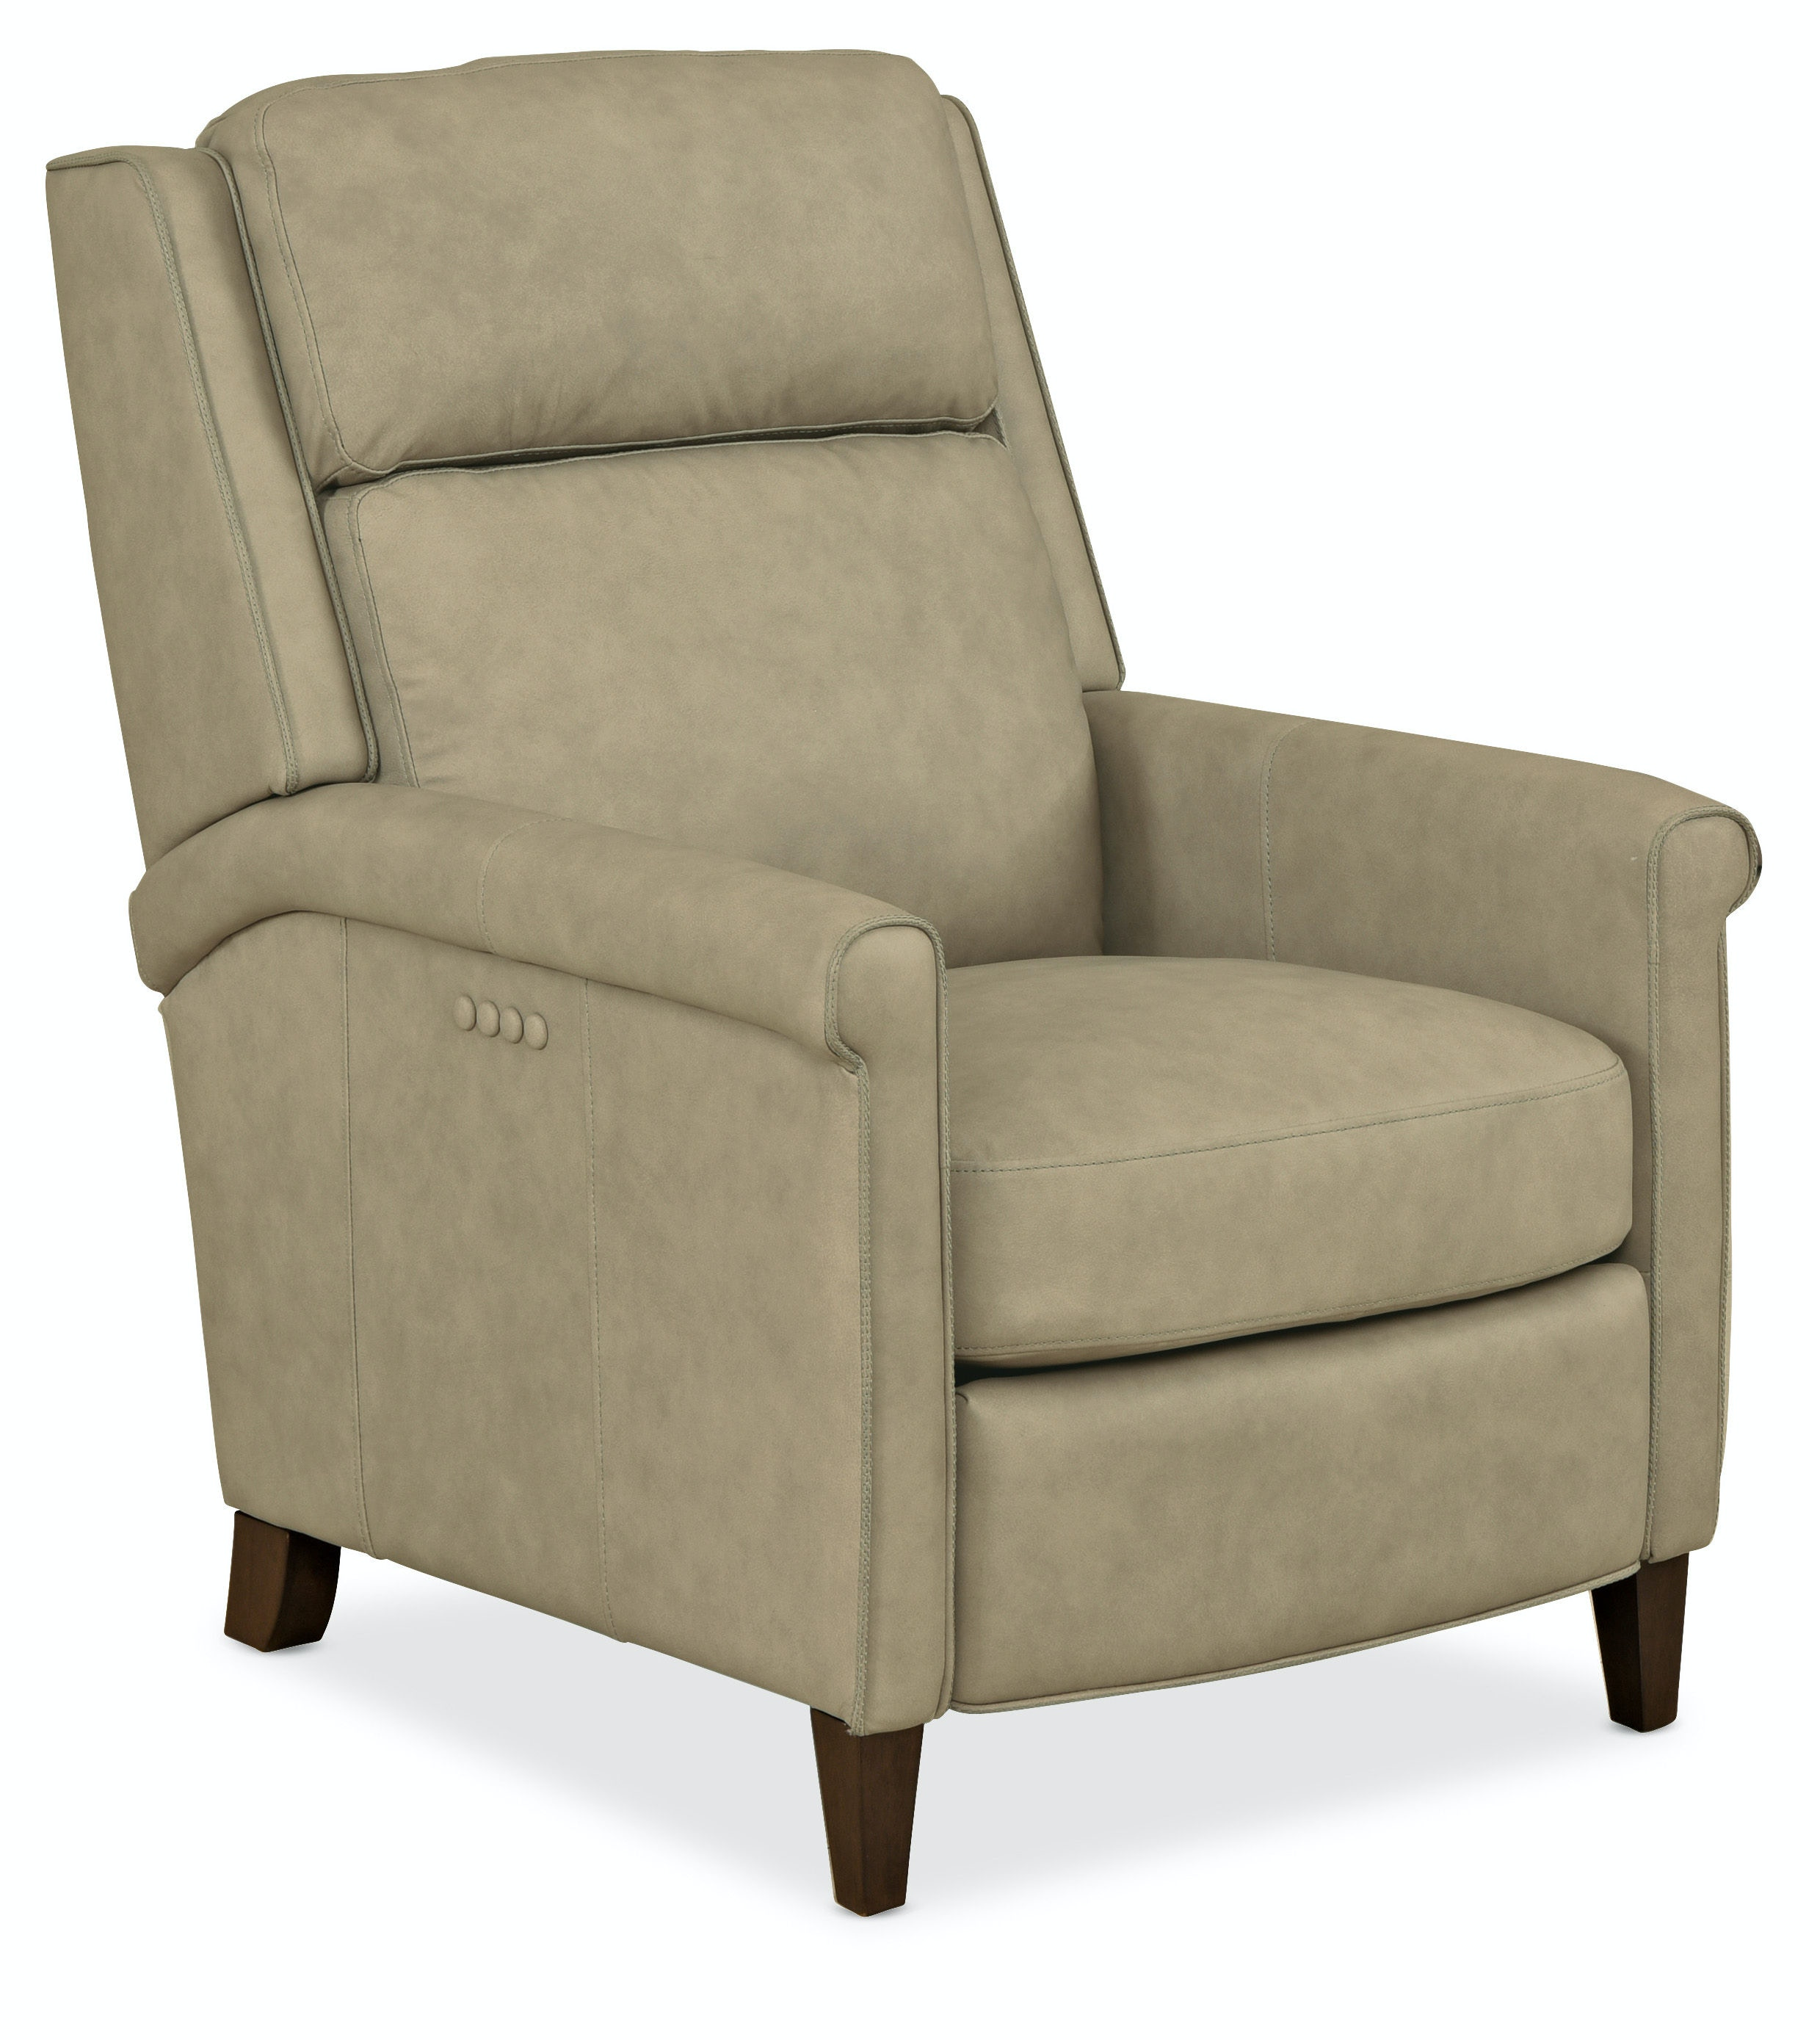 Hooker Furniture Living Room Rankin Pwr Recliner W Pwr Headrest Rc228 Ph 085